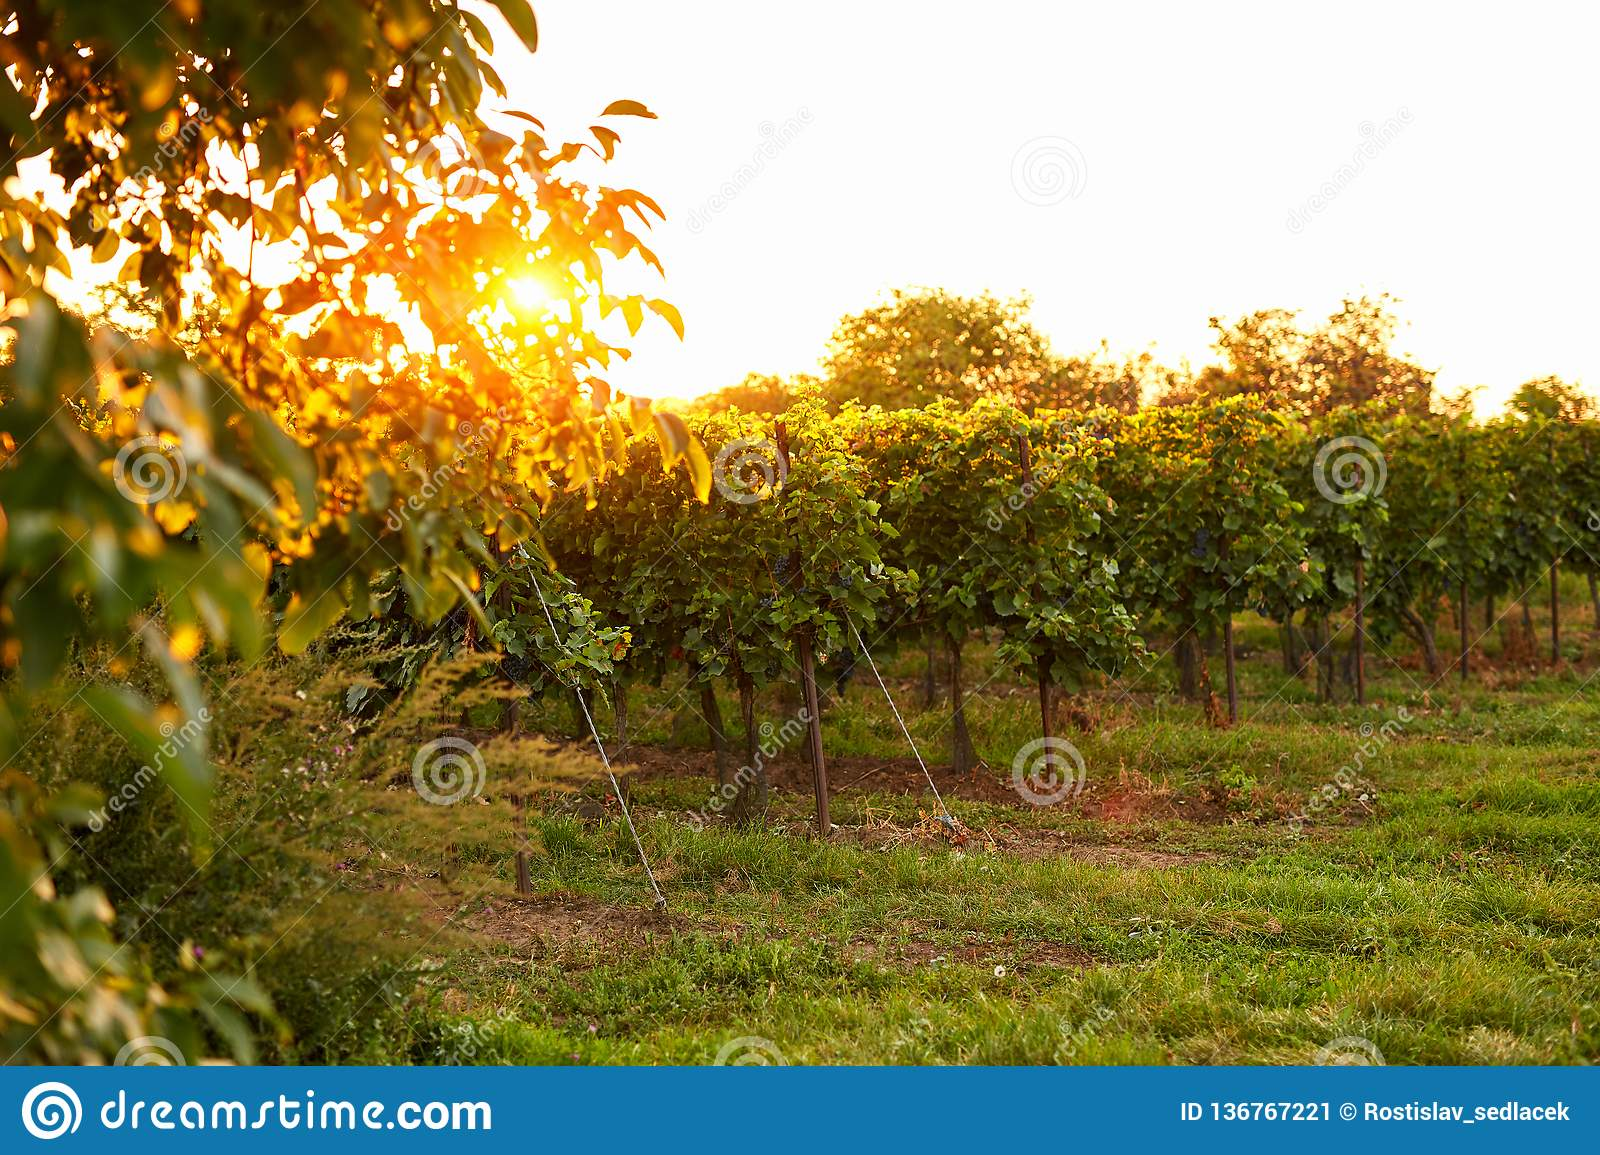 Evening view of vineyards with sun in the background